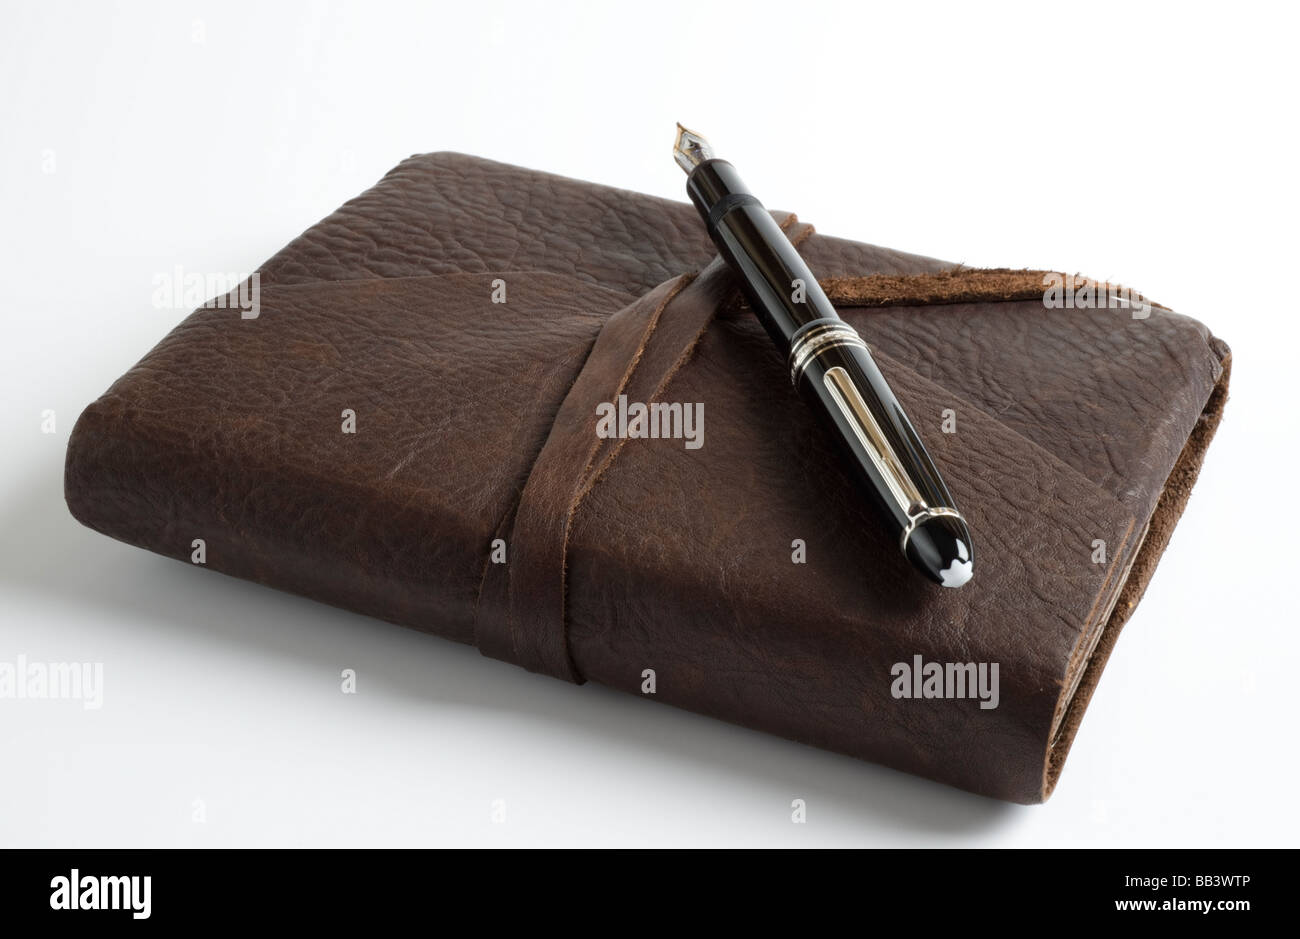 Tuscan leather bound journal and fountain pen on plain white background. - Stock Image